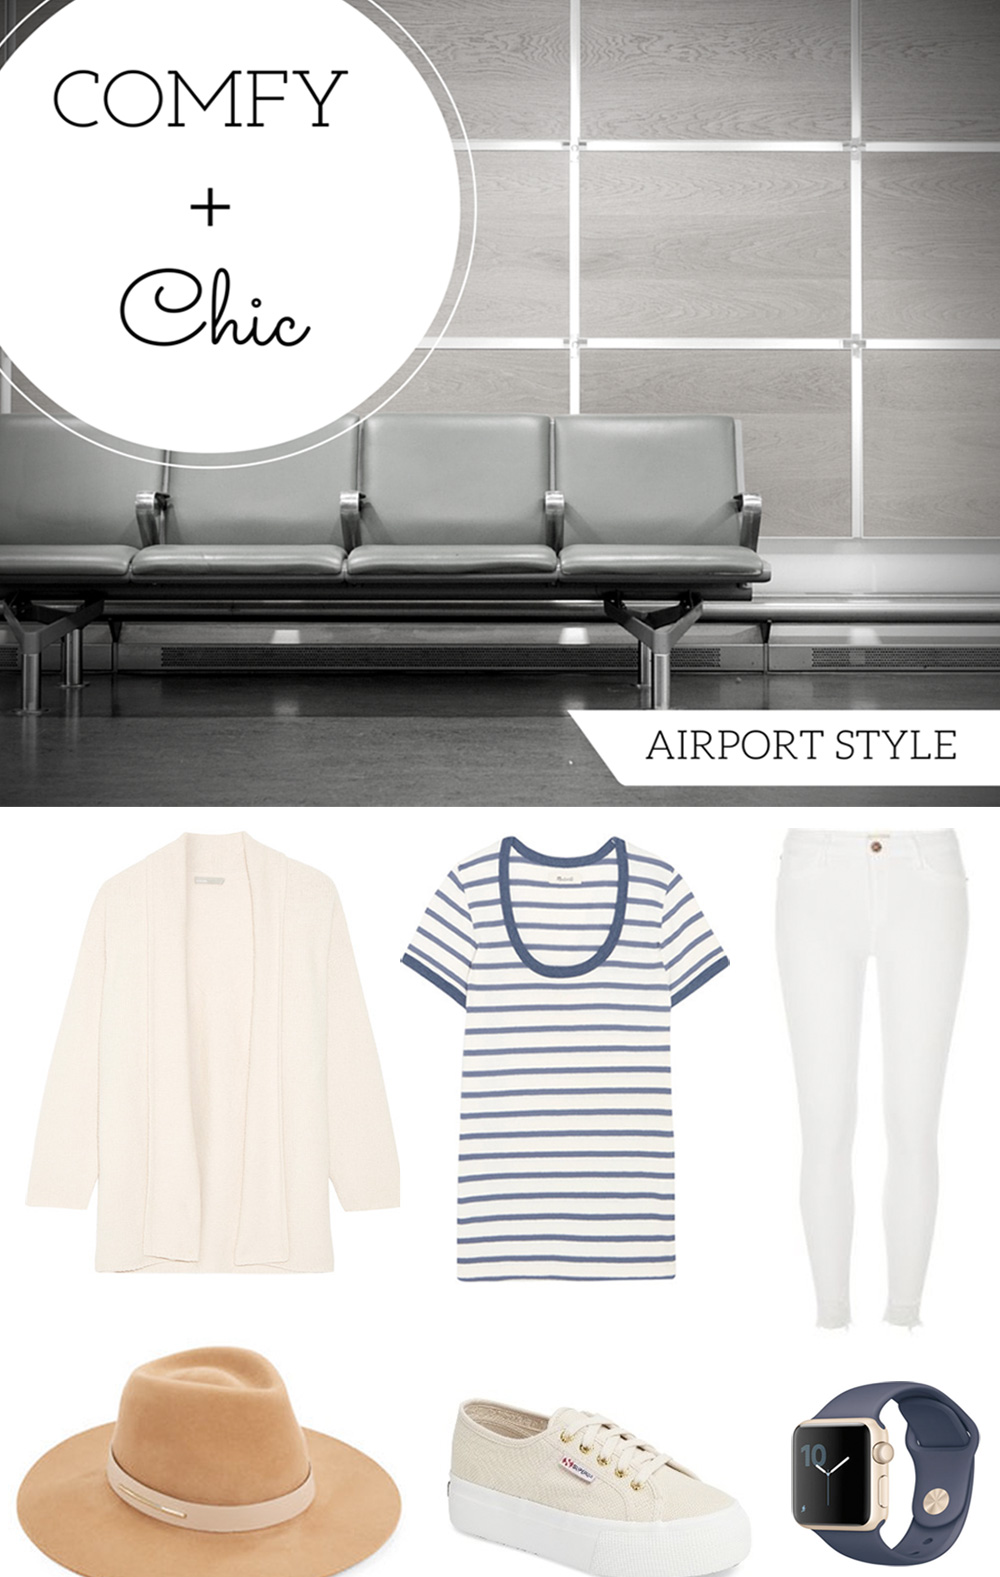 Airport Style – Comfy + Chic